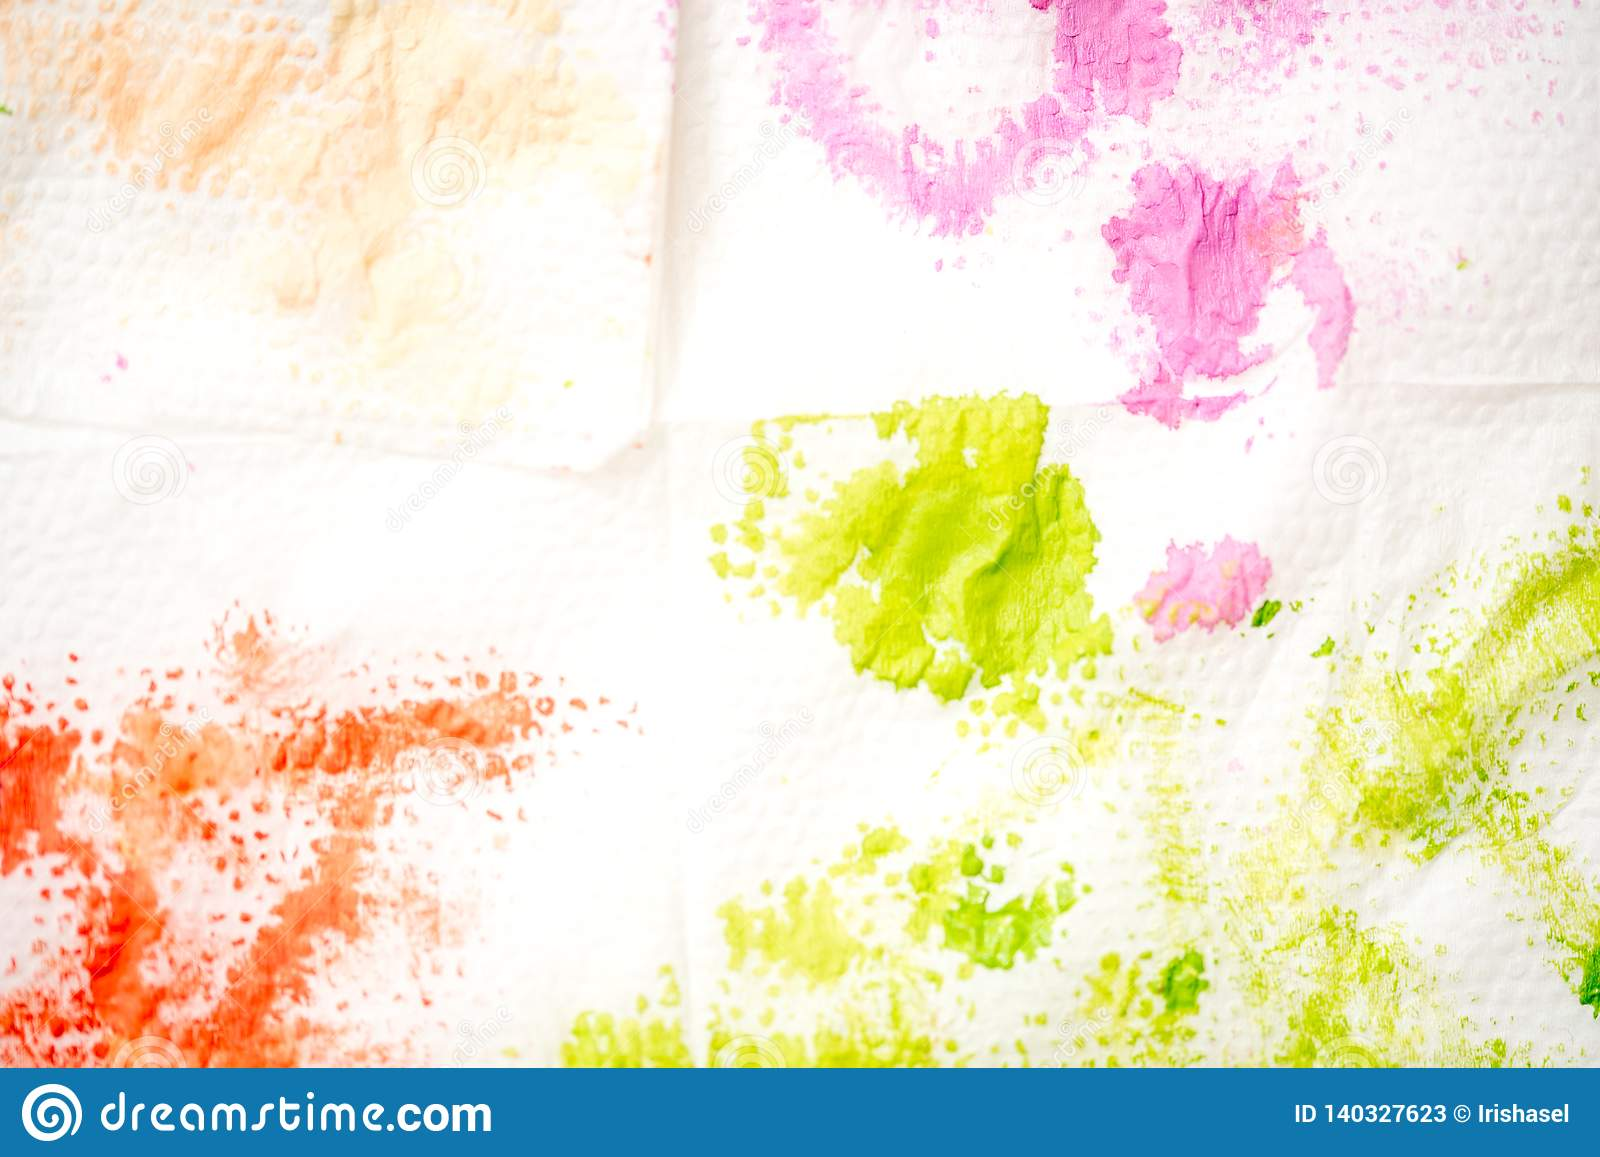 Abstract watercolor hand painted background. Green stain of paint on a white napkin